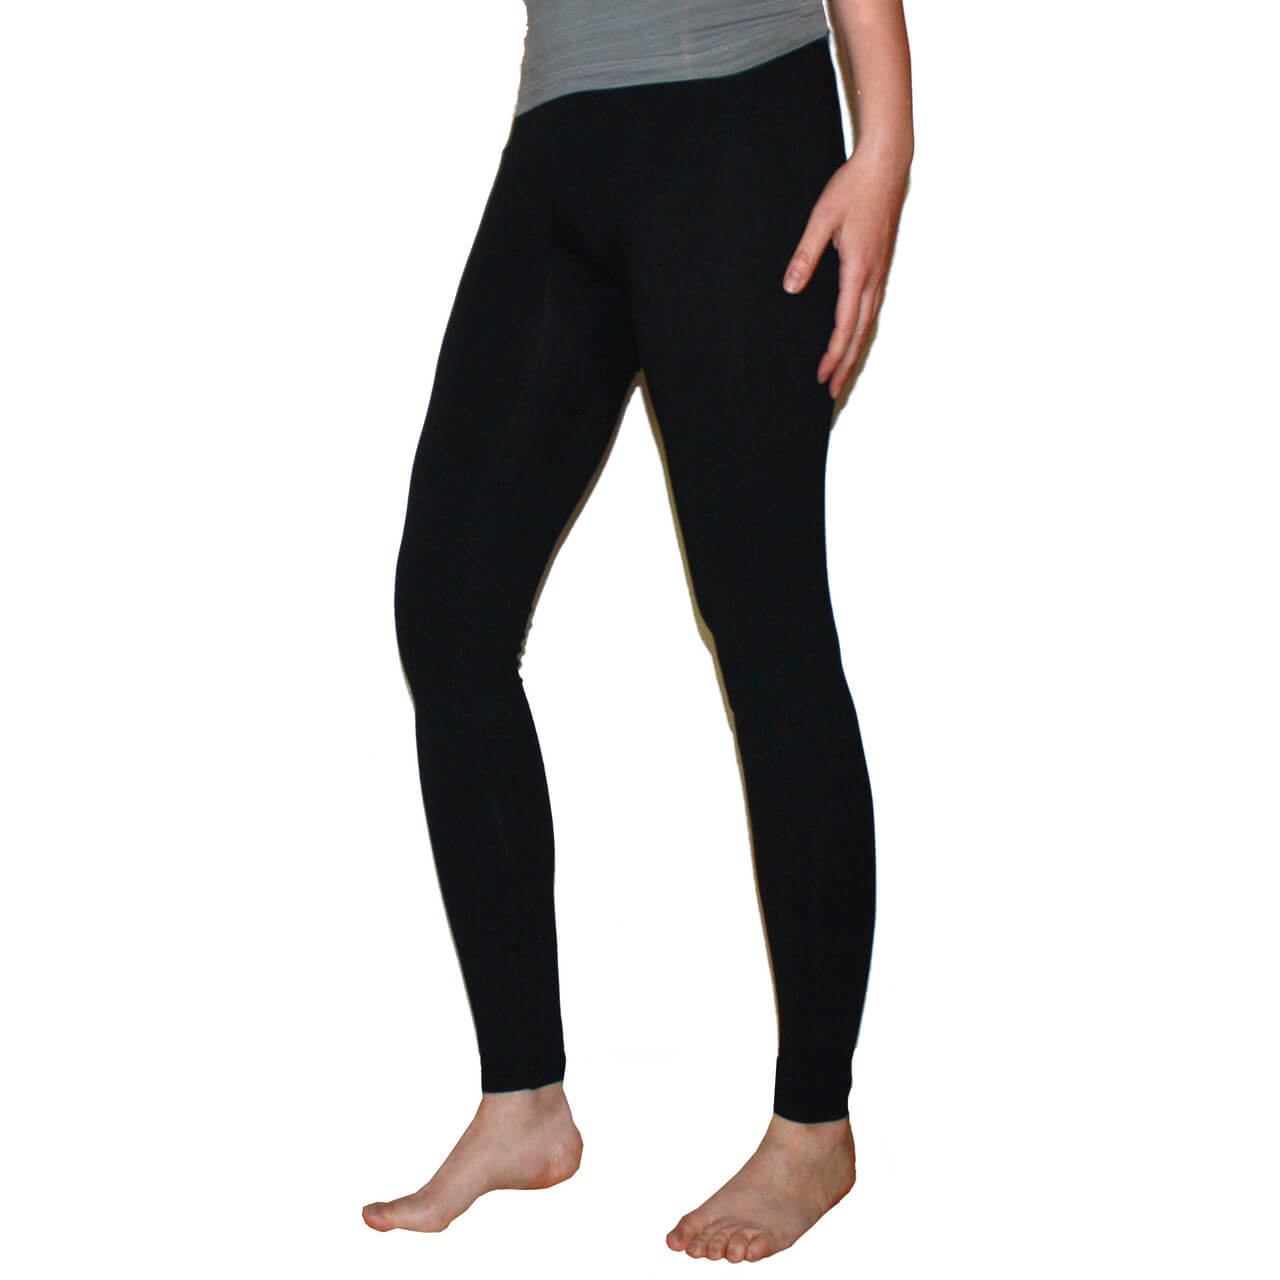 Find great deals on eBay for womens black leggings. Shop with confidence.